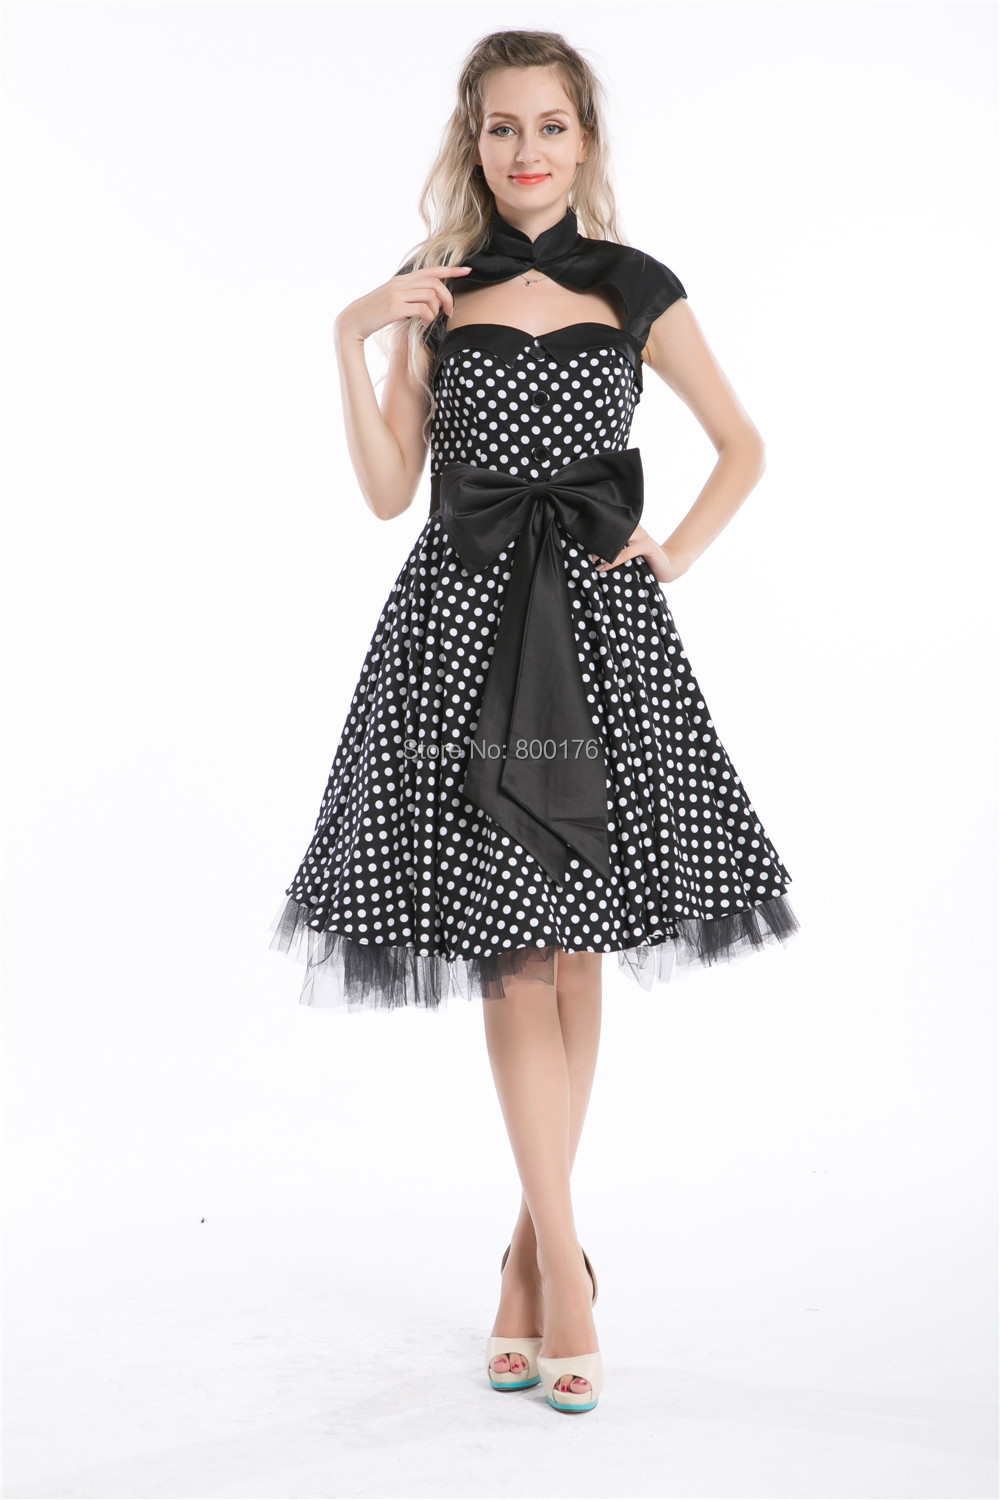 Compare Prices on Kleid Vintage Schwarz- Online Shopping/Buy Low ...